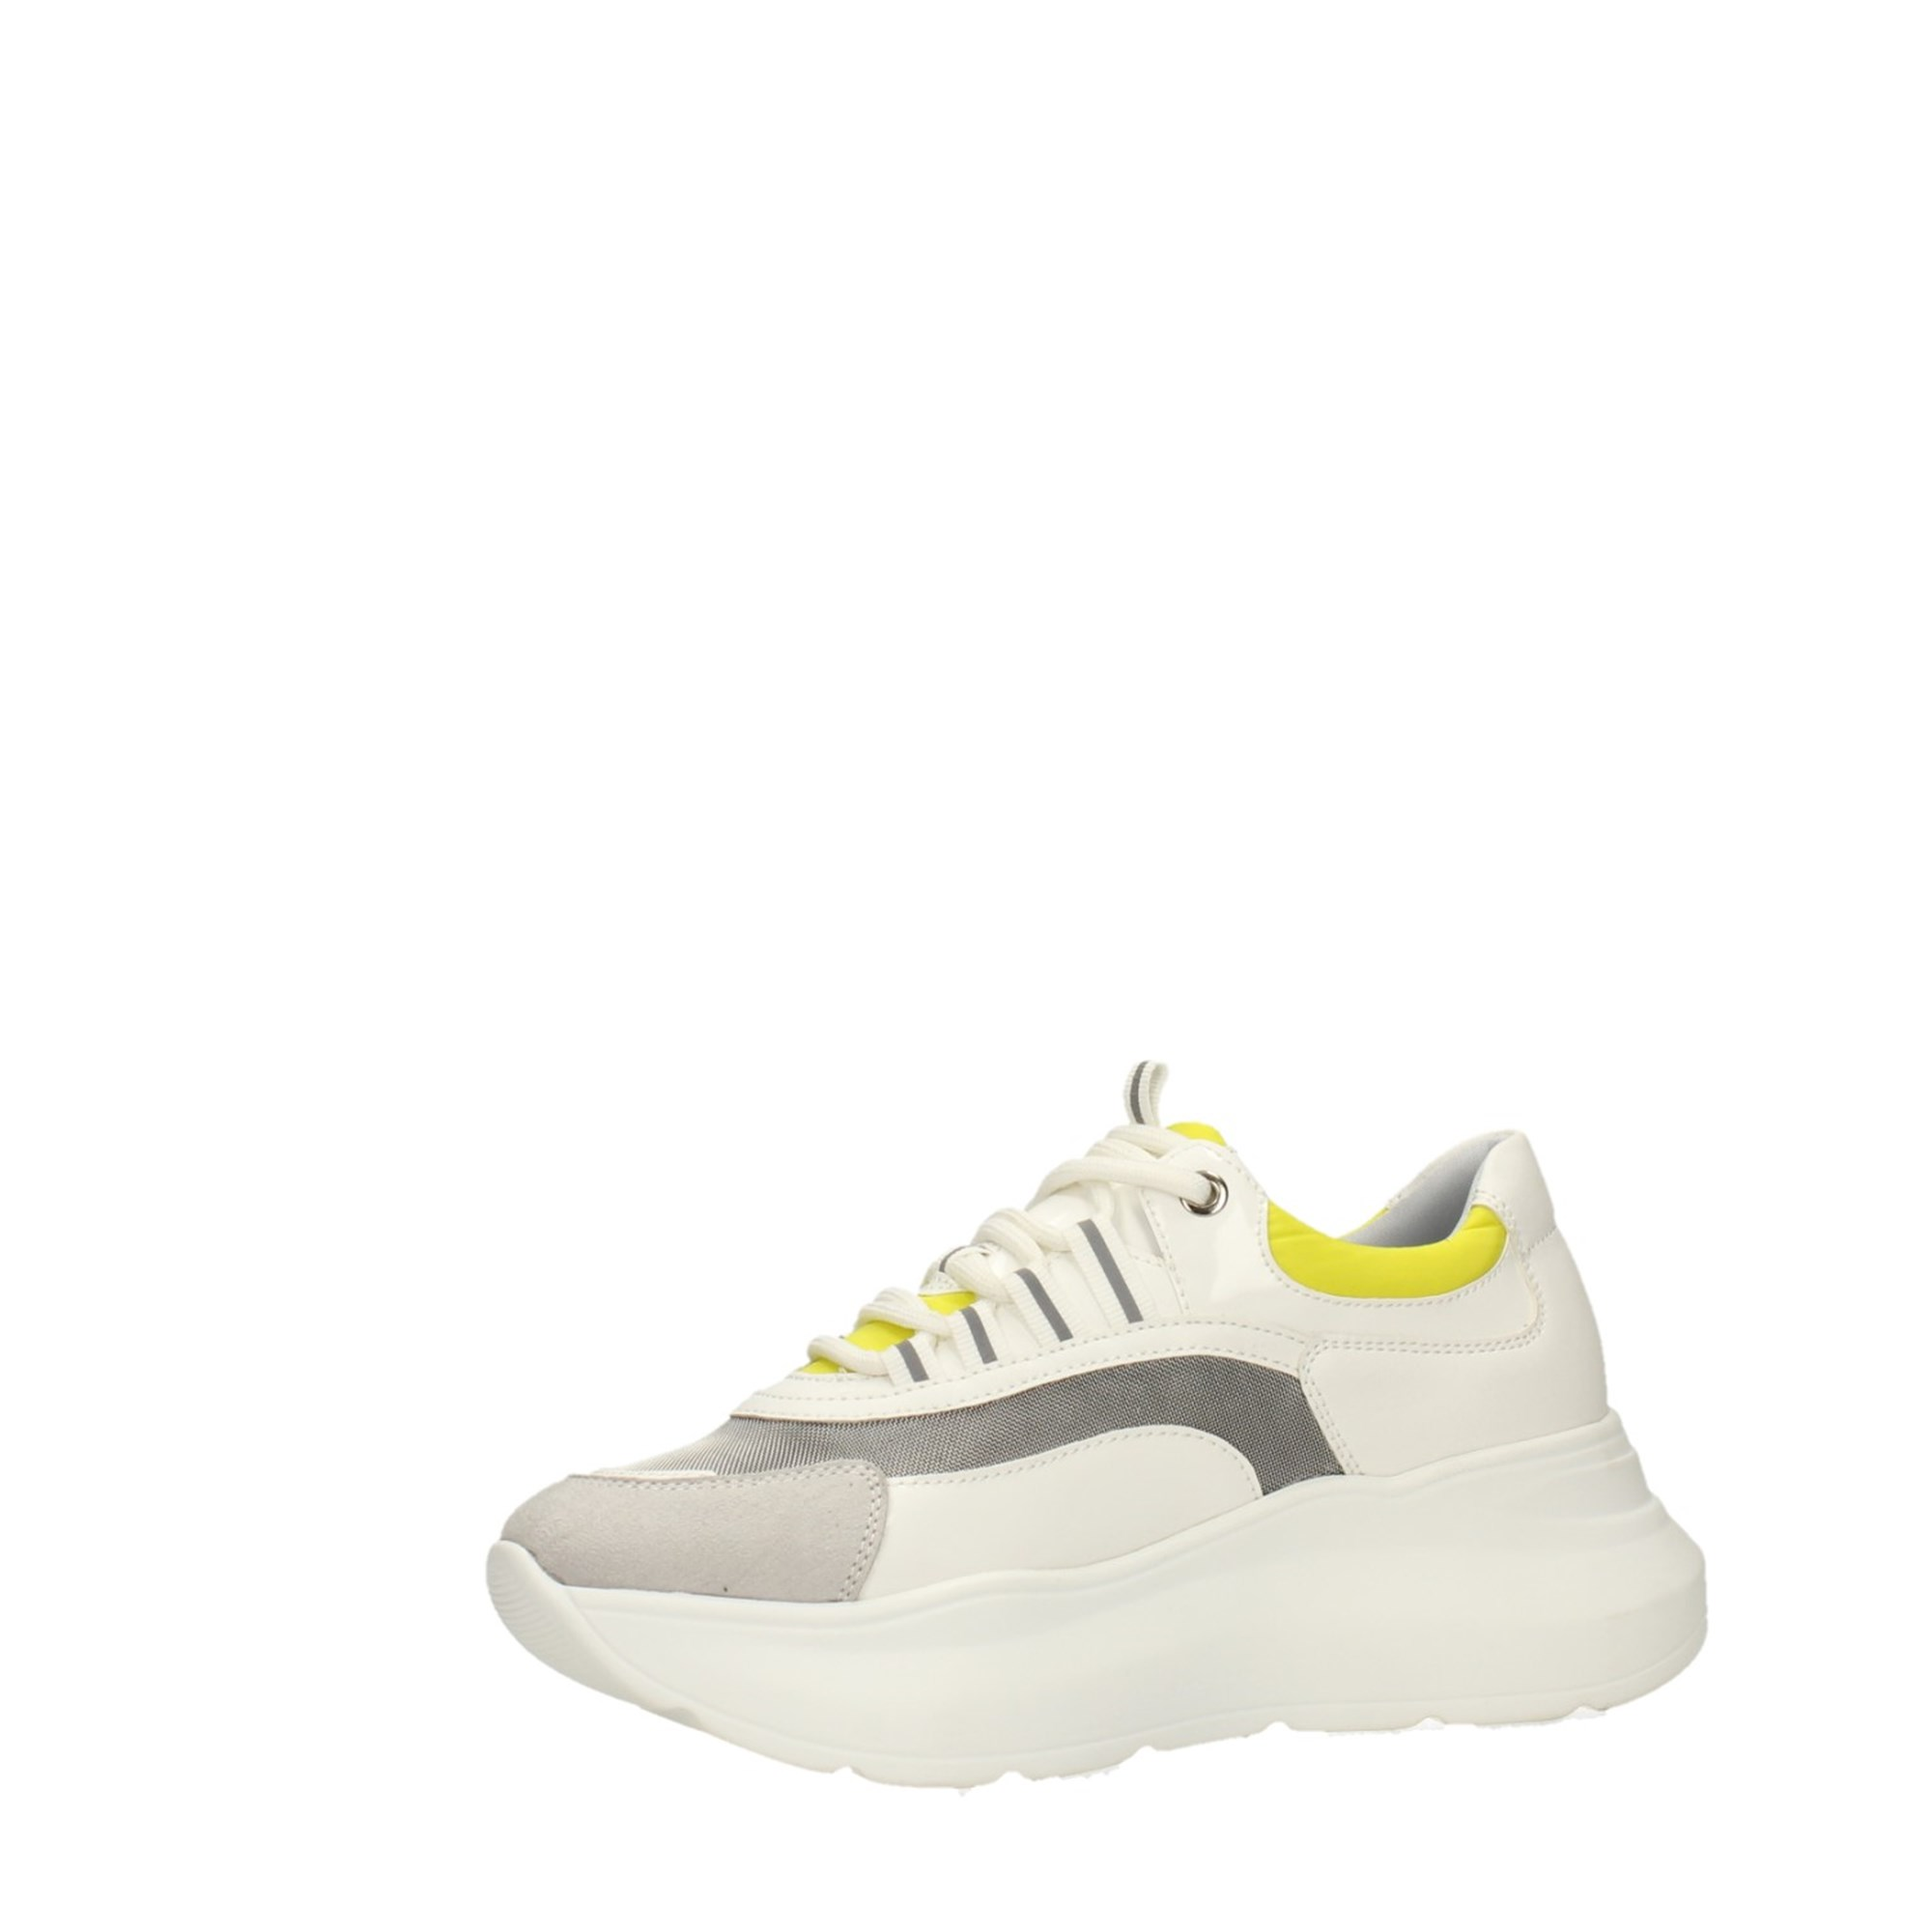 Tata Italia Shoes Woman Sneakers TA2S143-1